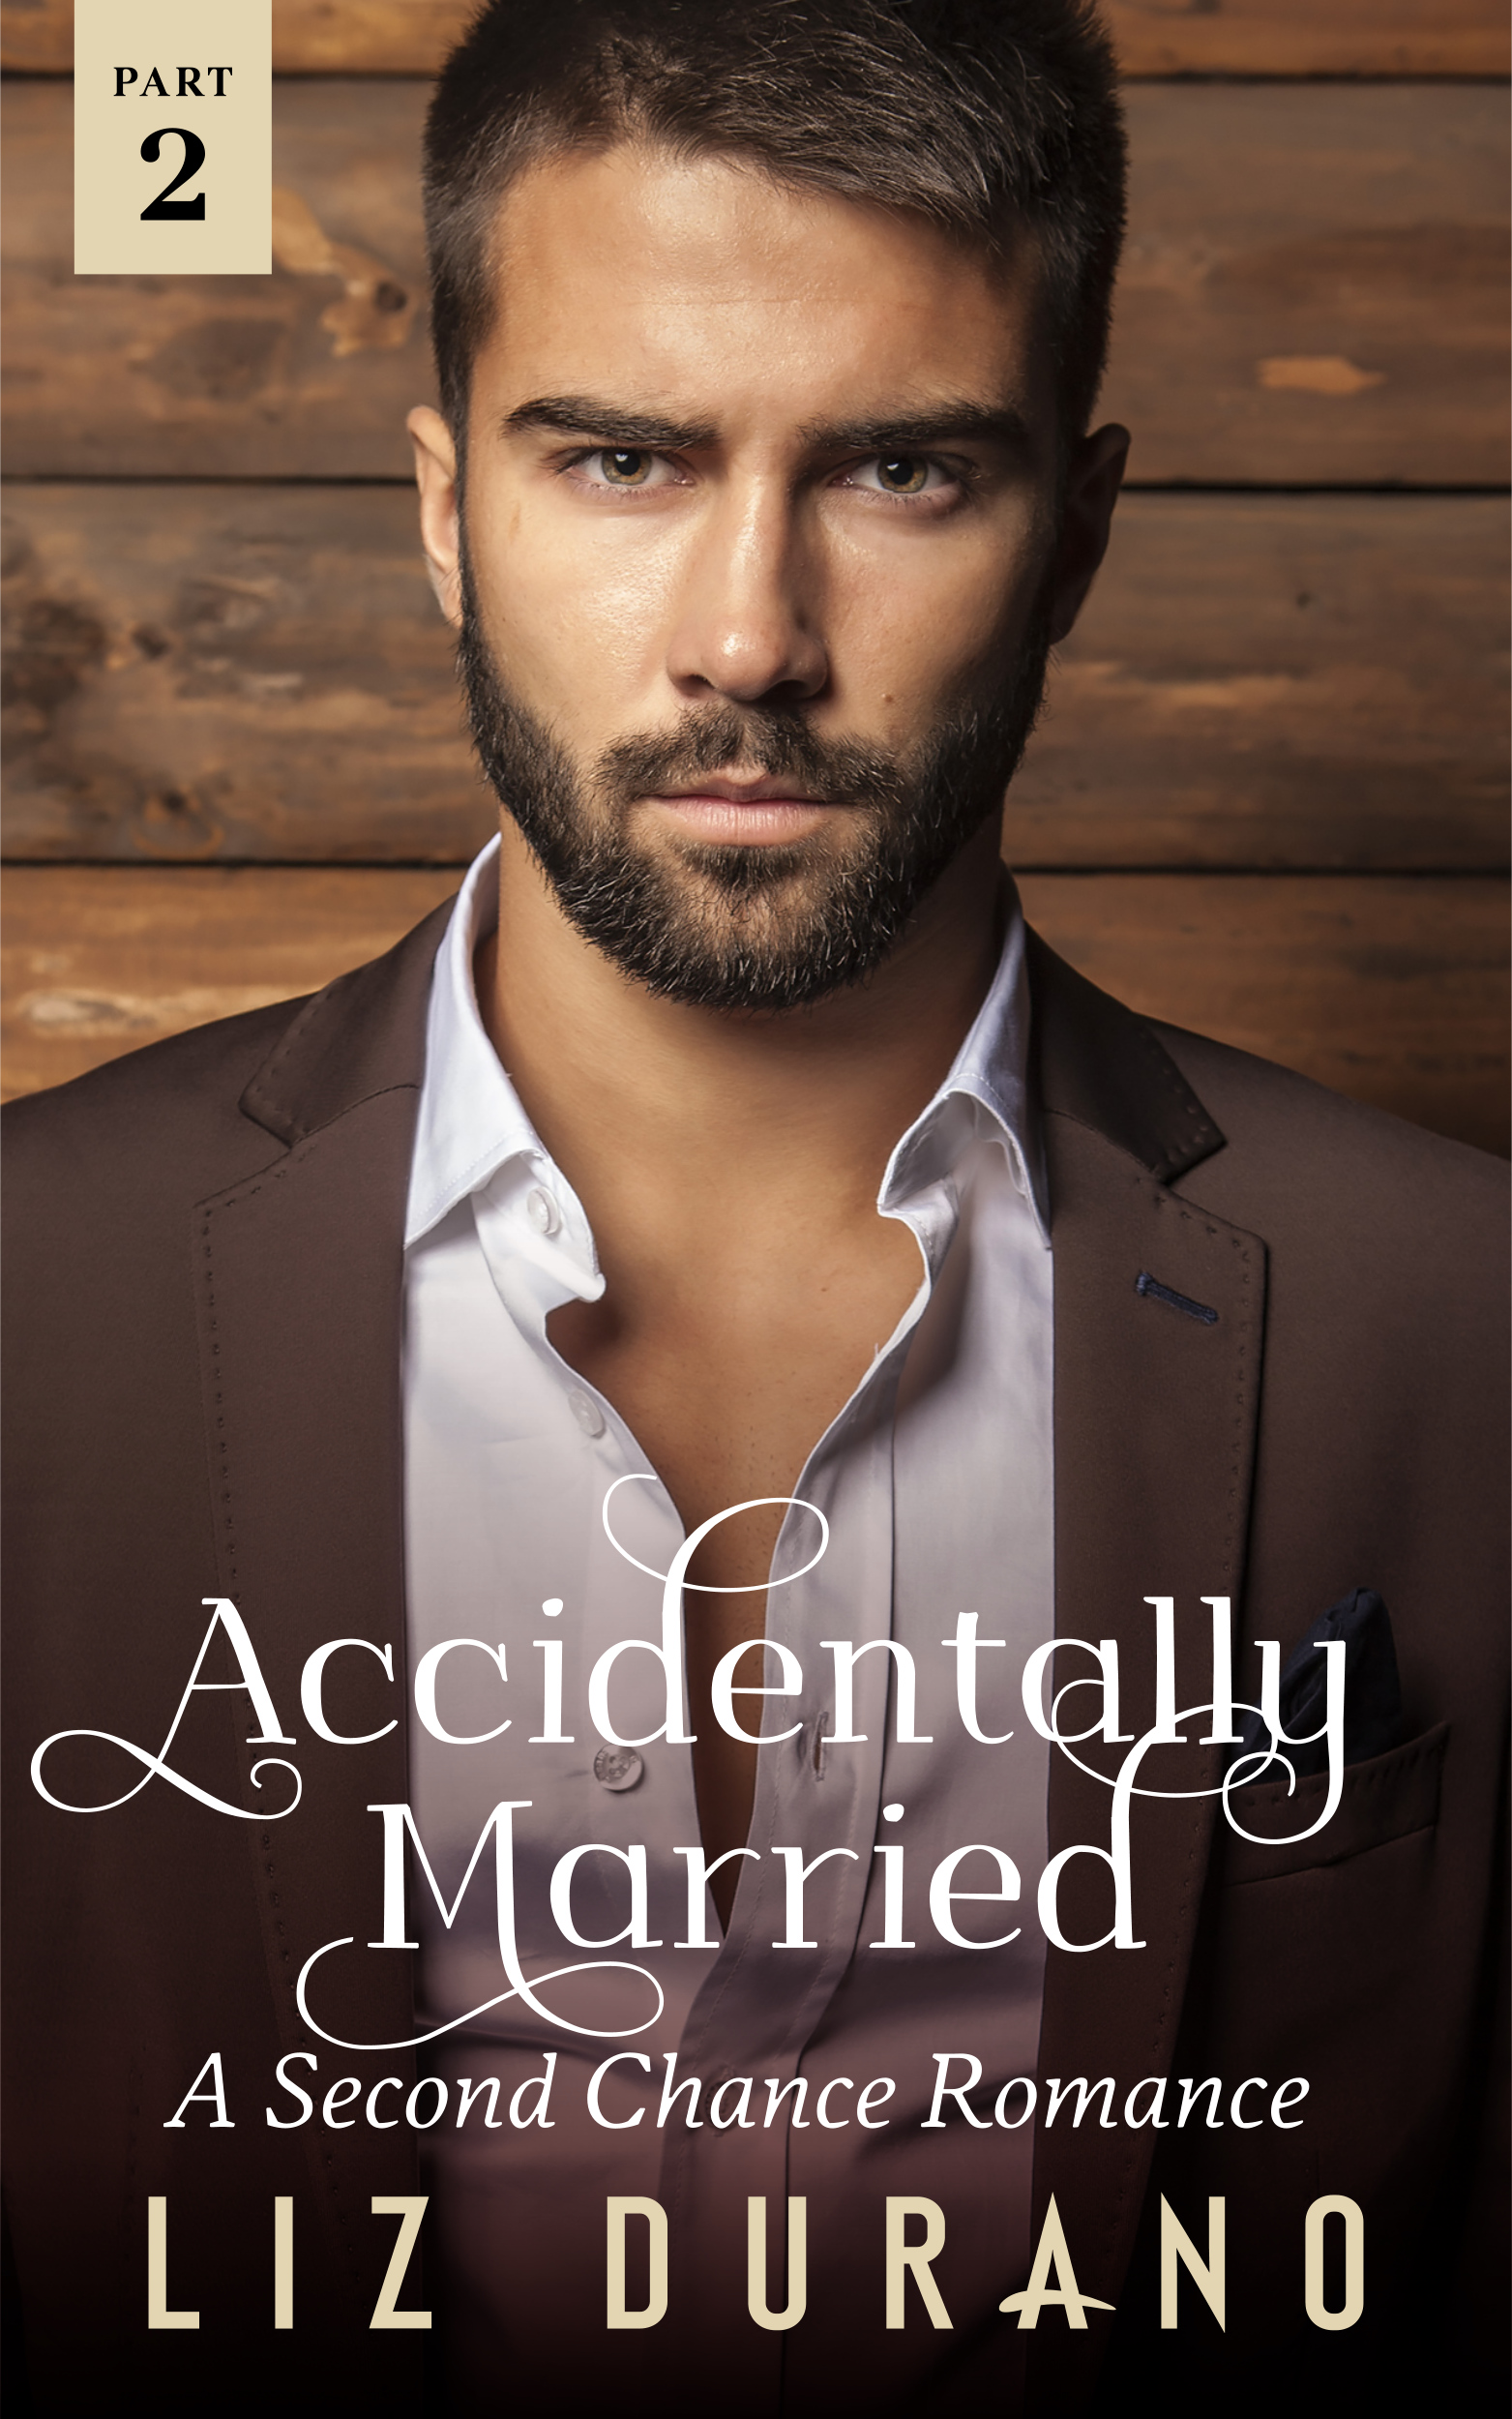 Accidently Married - High Resolution